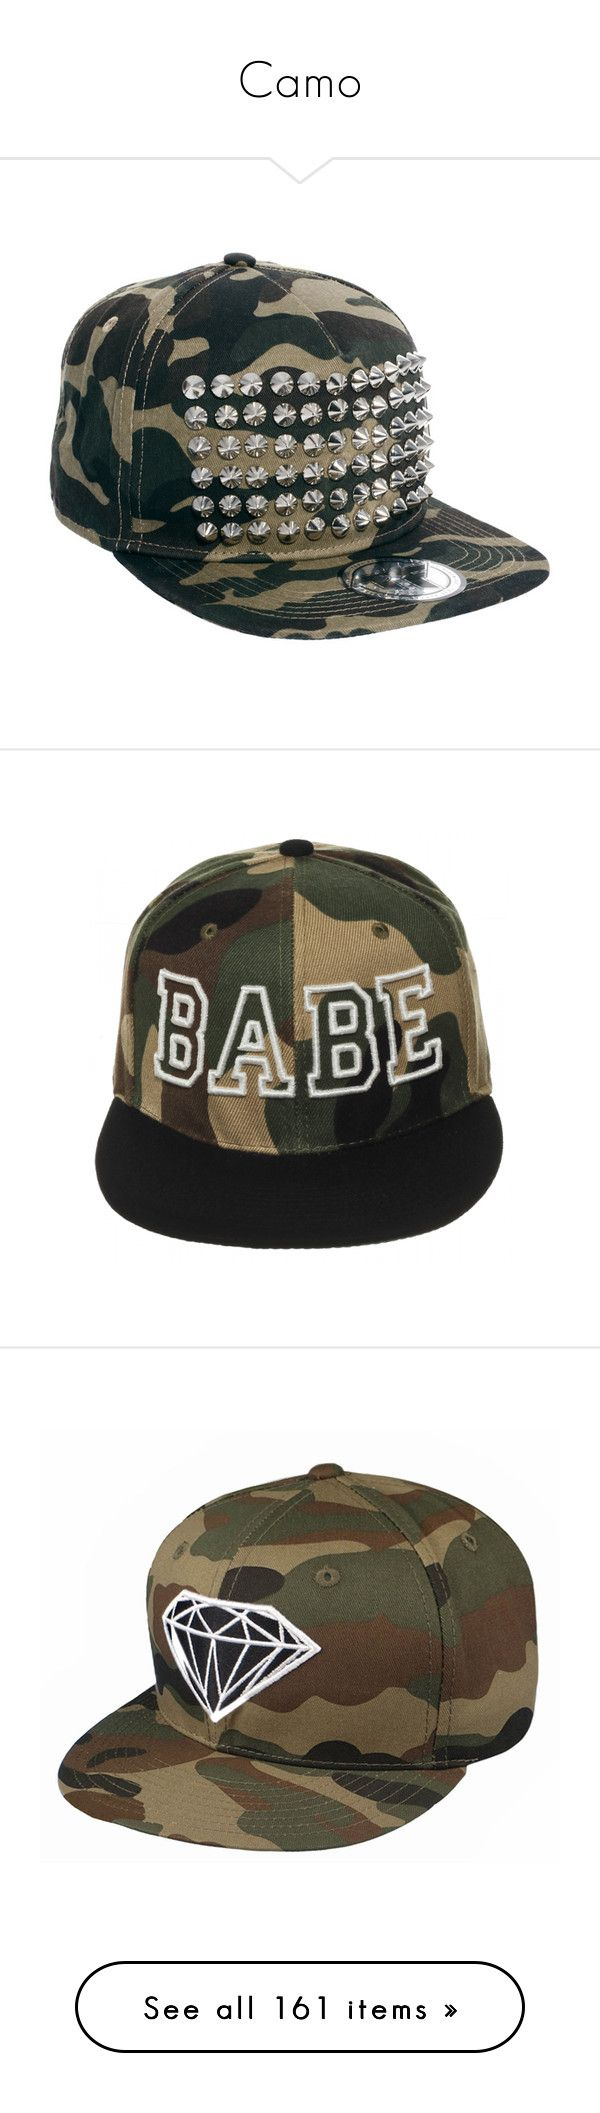 """""""Camo"""" by robinnnnnnn ❤ liked on Polyvore featuring accessories, hats, snapbacks, camouflage, zephyr hats, camo hats, crown cap hats, camouflage snapbacks, dome cap and camo"""